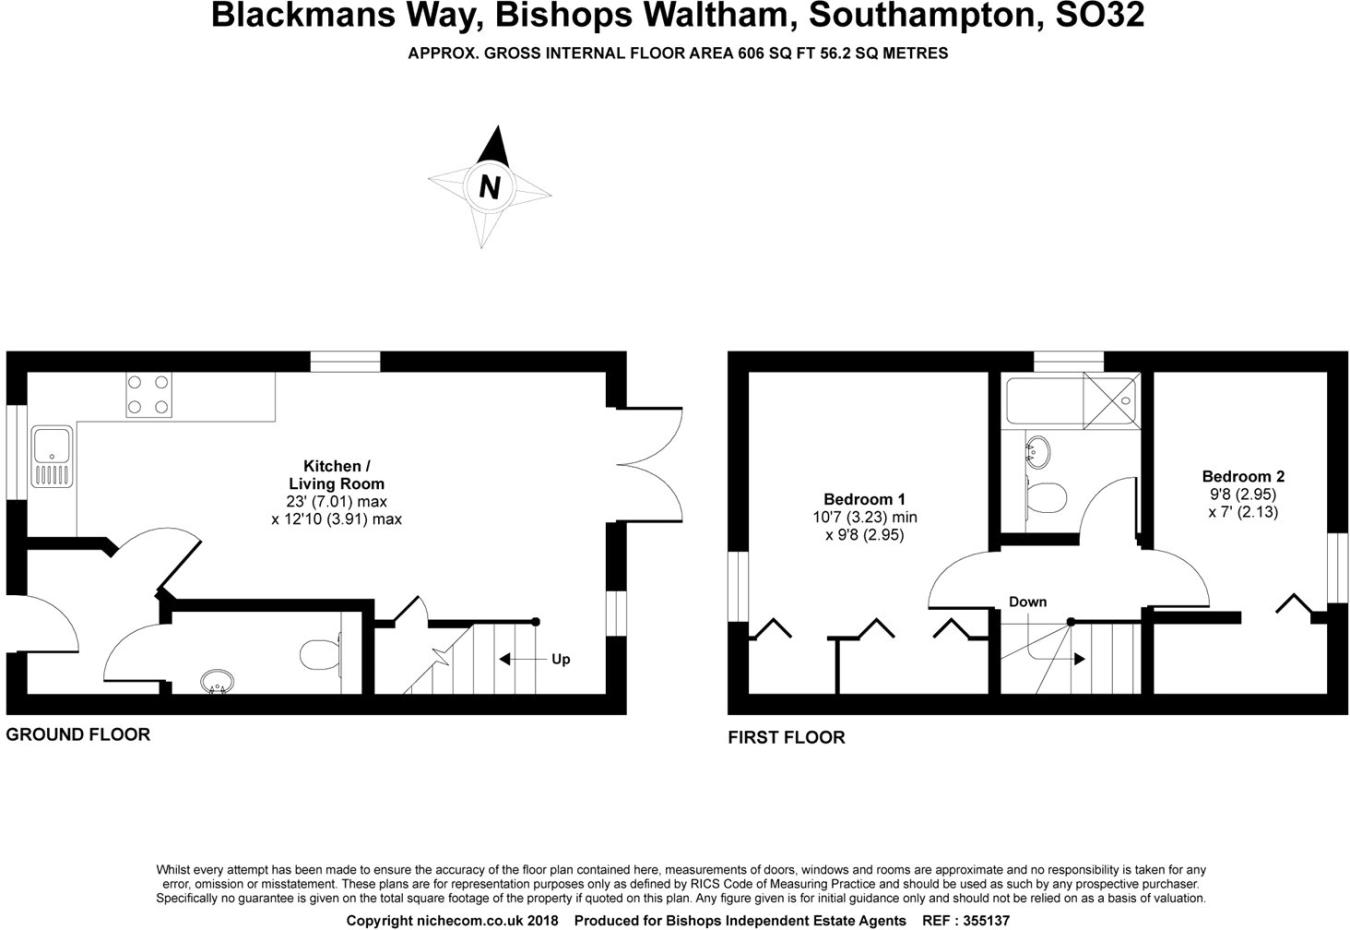 hight resolution of 2 bedroom house for sale in blackmans way bishops waltham hampshire so32 so32